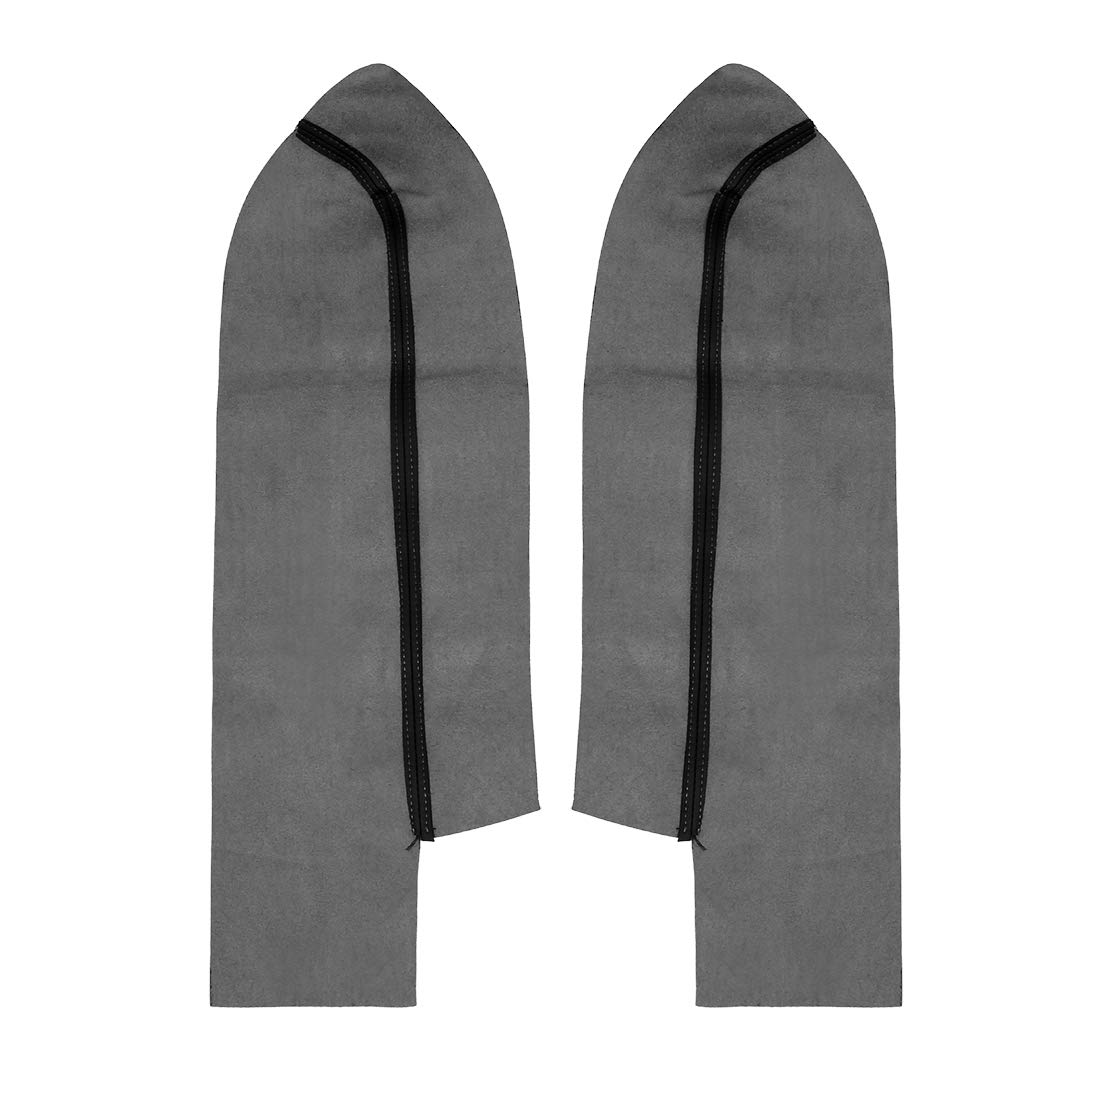 X AUTOHAUX Pair Synthetic Leather Car Front Door Panels Armrest Cover Black for 2007-2012 Honda CR-V